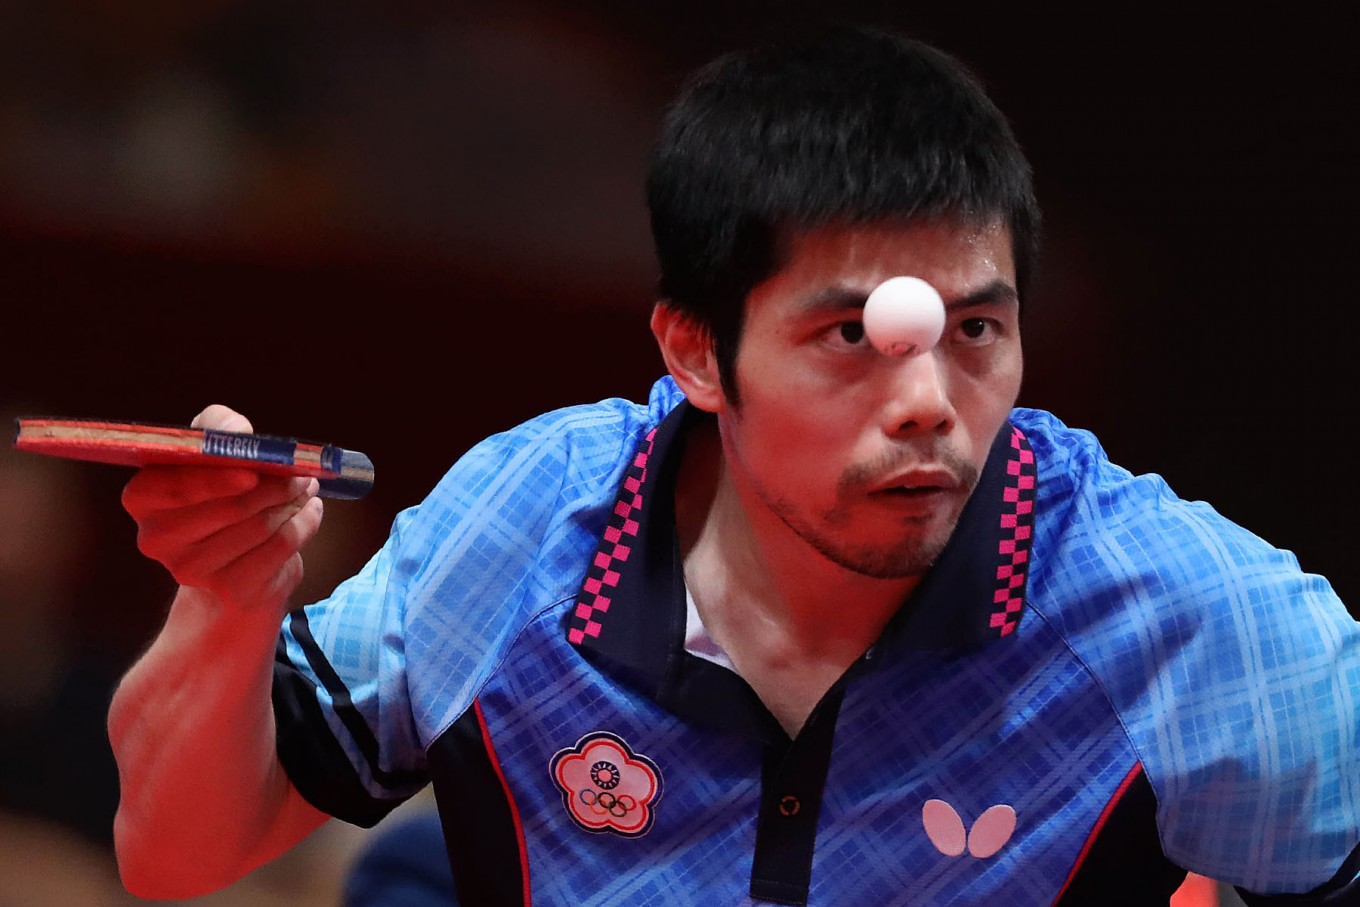 Chinese Taipei's Chihyuan Chuang keeps his eye on the ball in a men's table tennis match. JP/PJ Leo